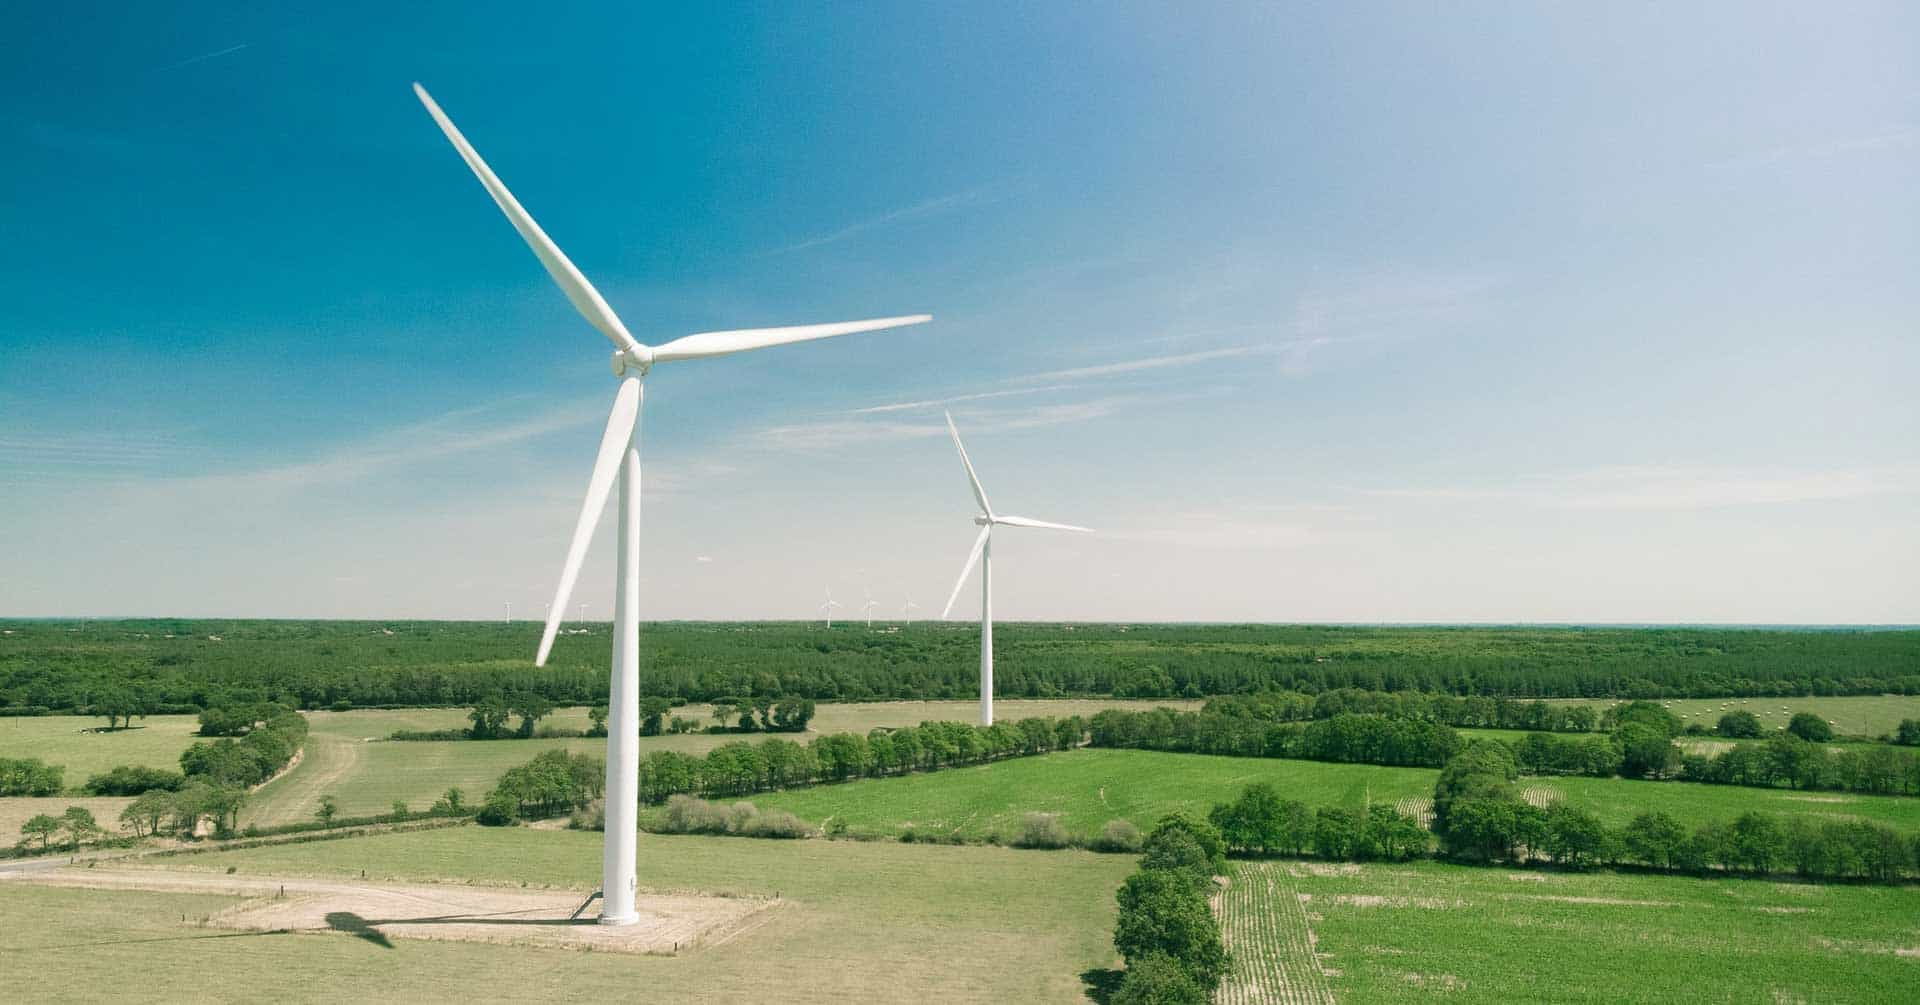 Two wind turbines stand in a colorful green field on a sunny day